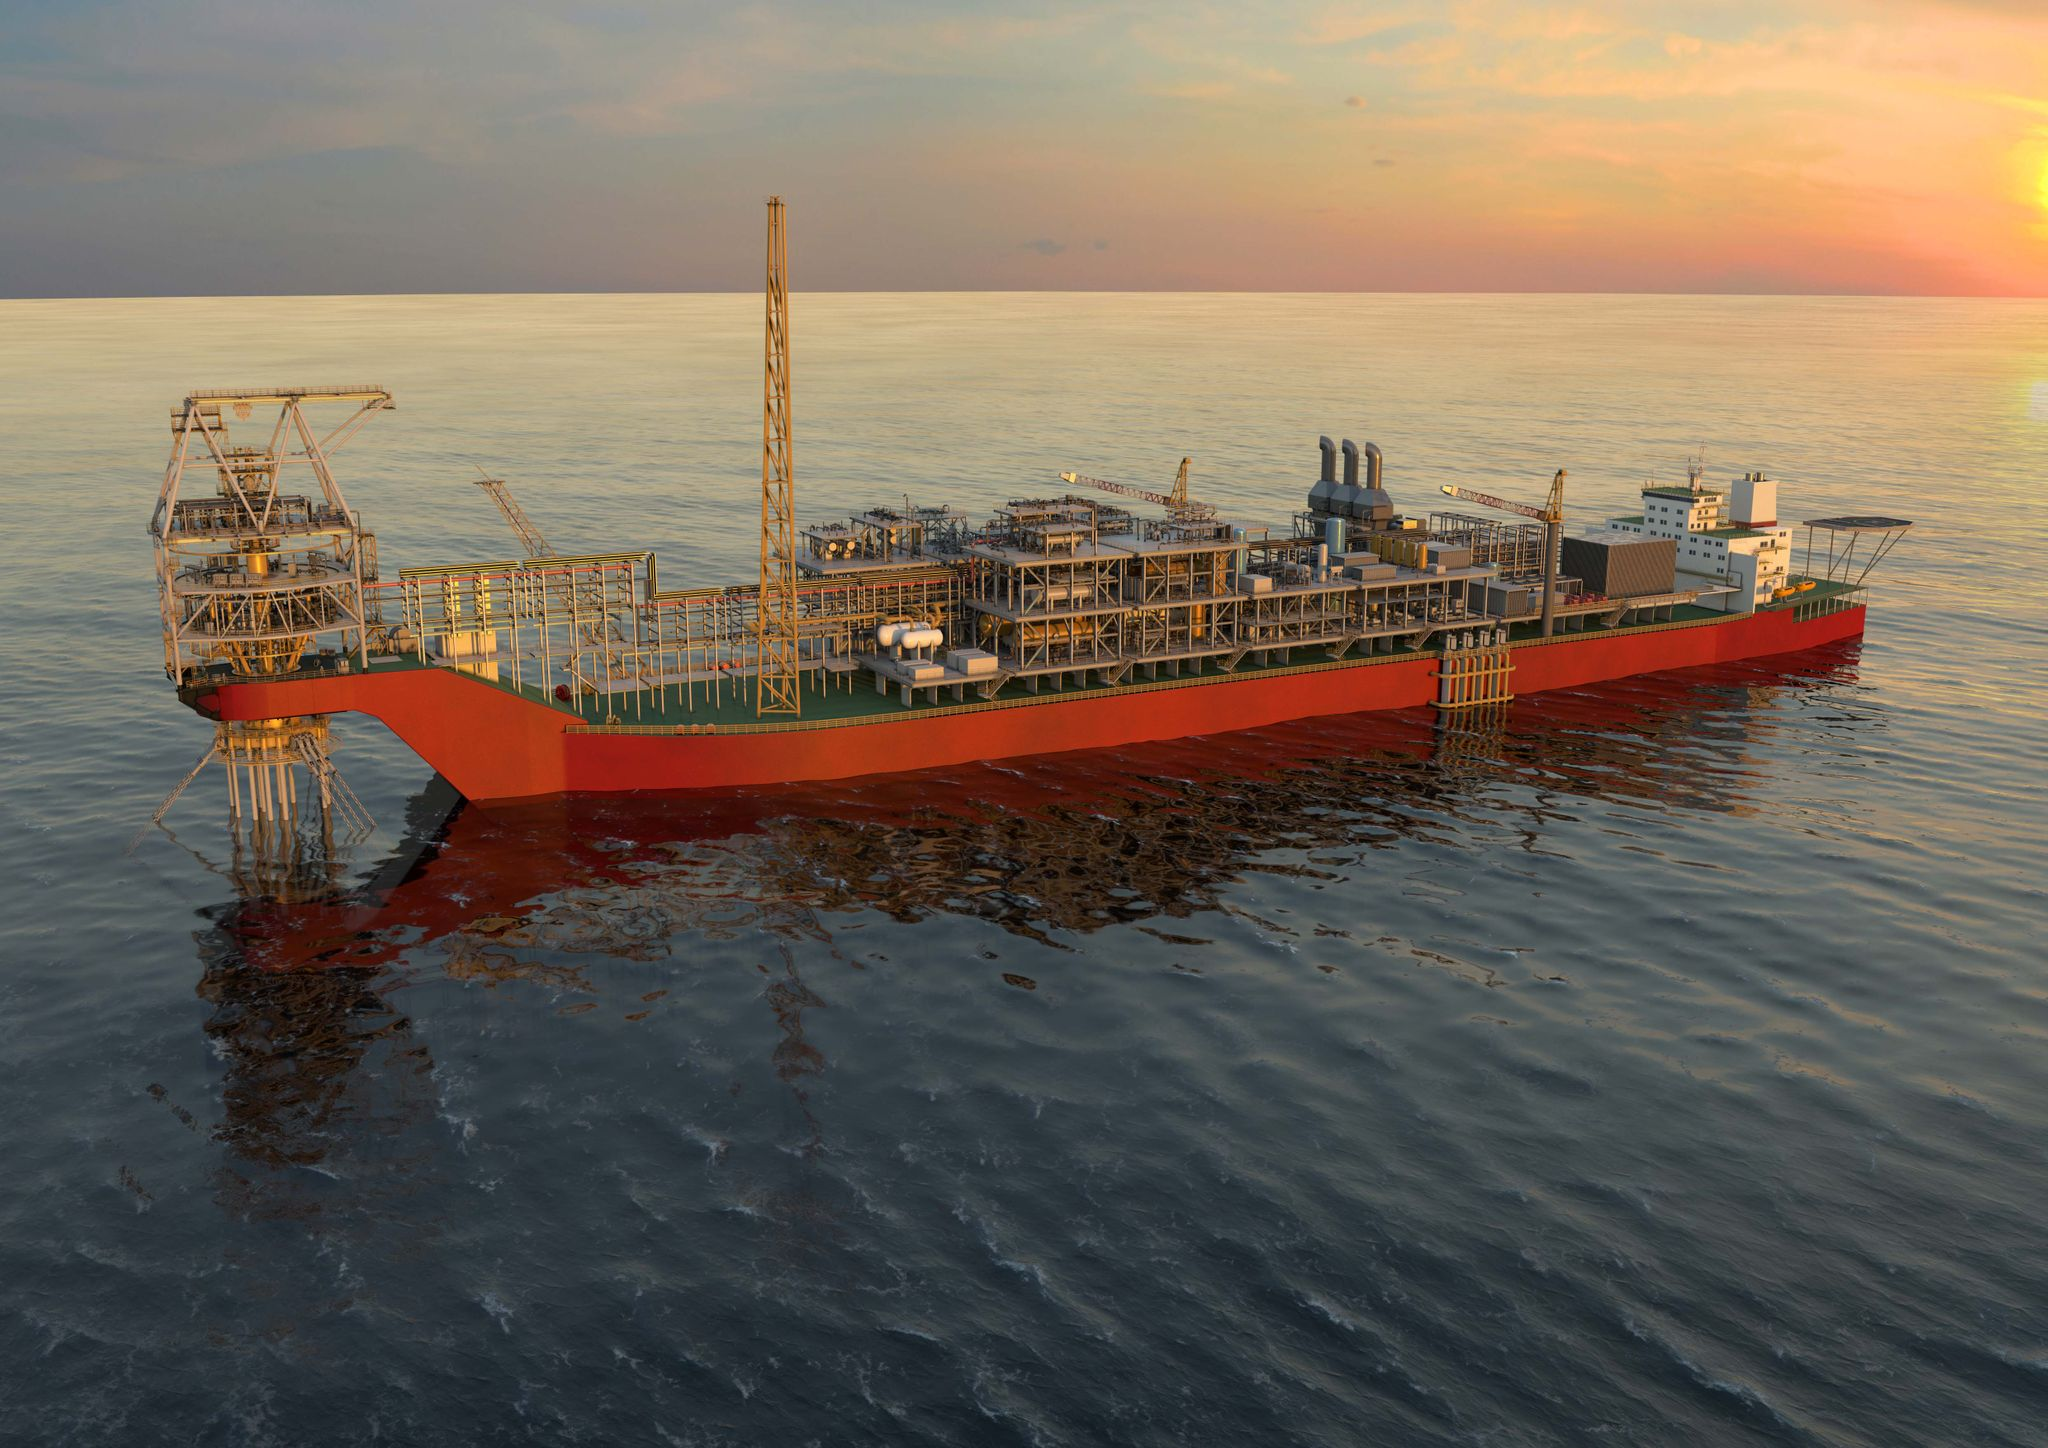 Rendering of an FPSO in the water